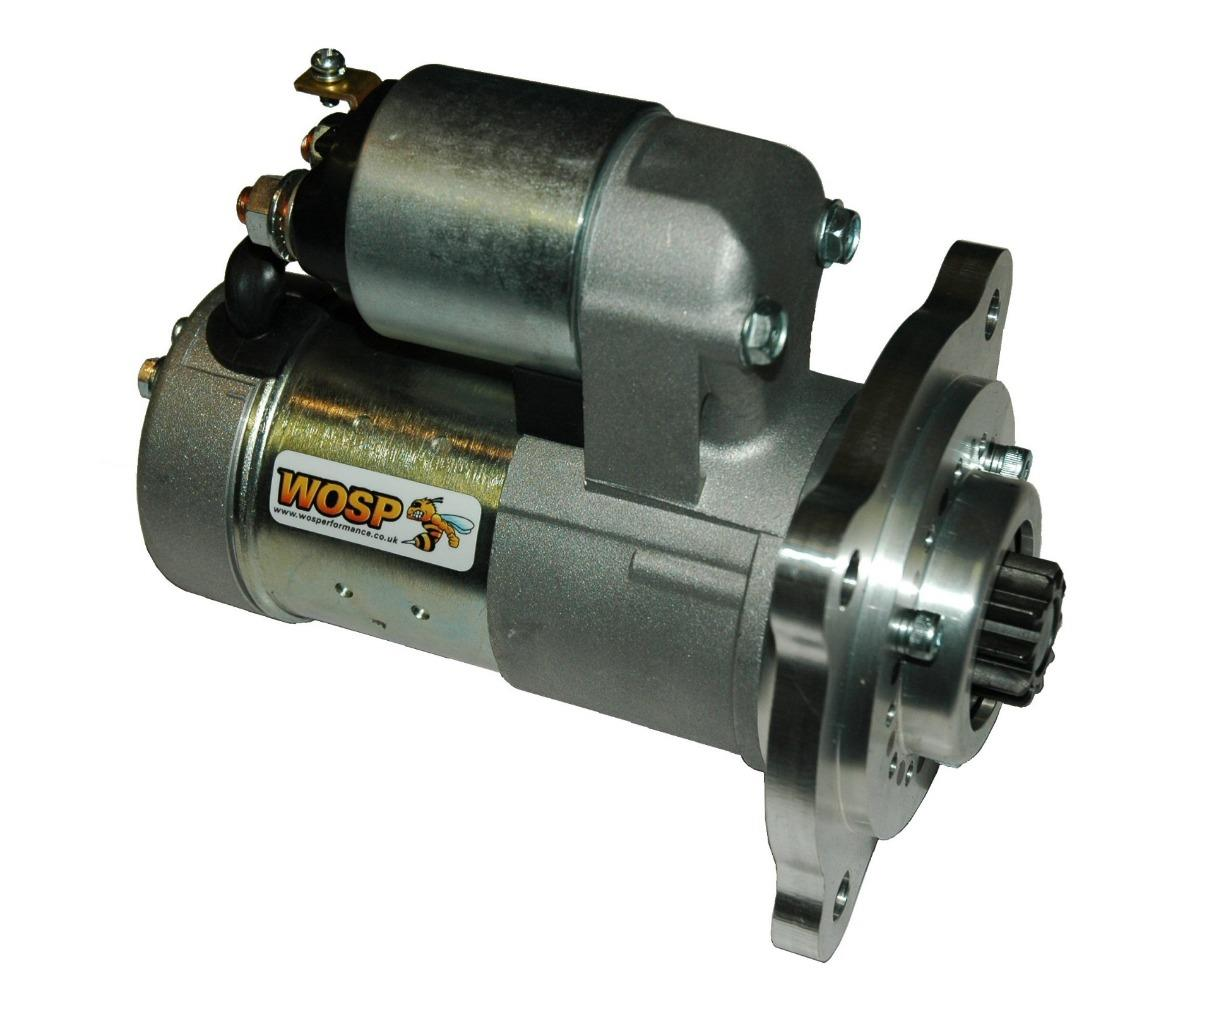 Ford Pinto Pmgr High Torque Starter Motor 1 4kw 10 Teeth